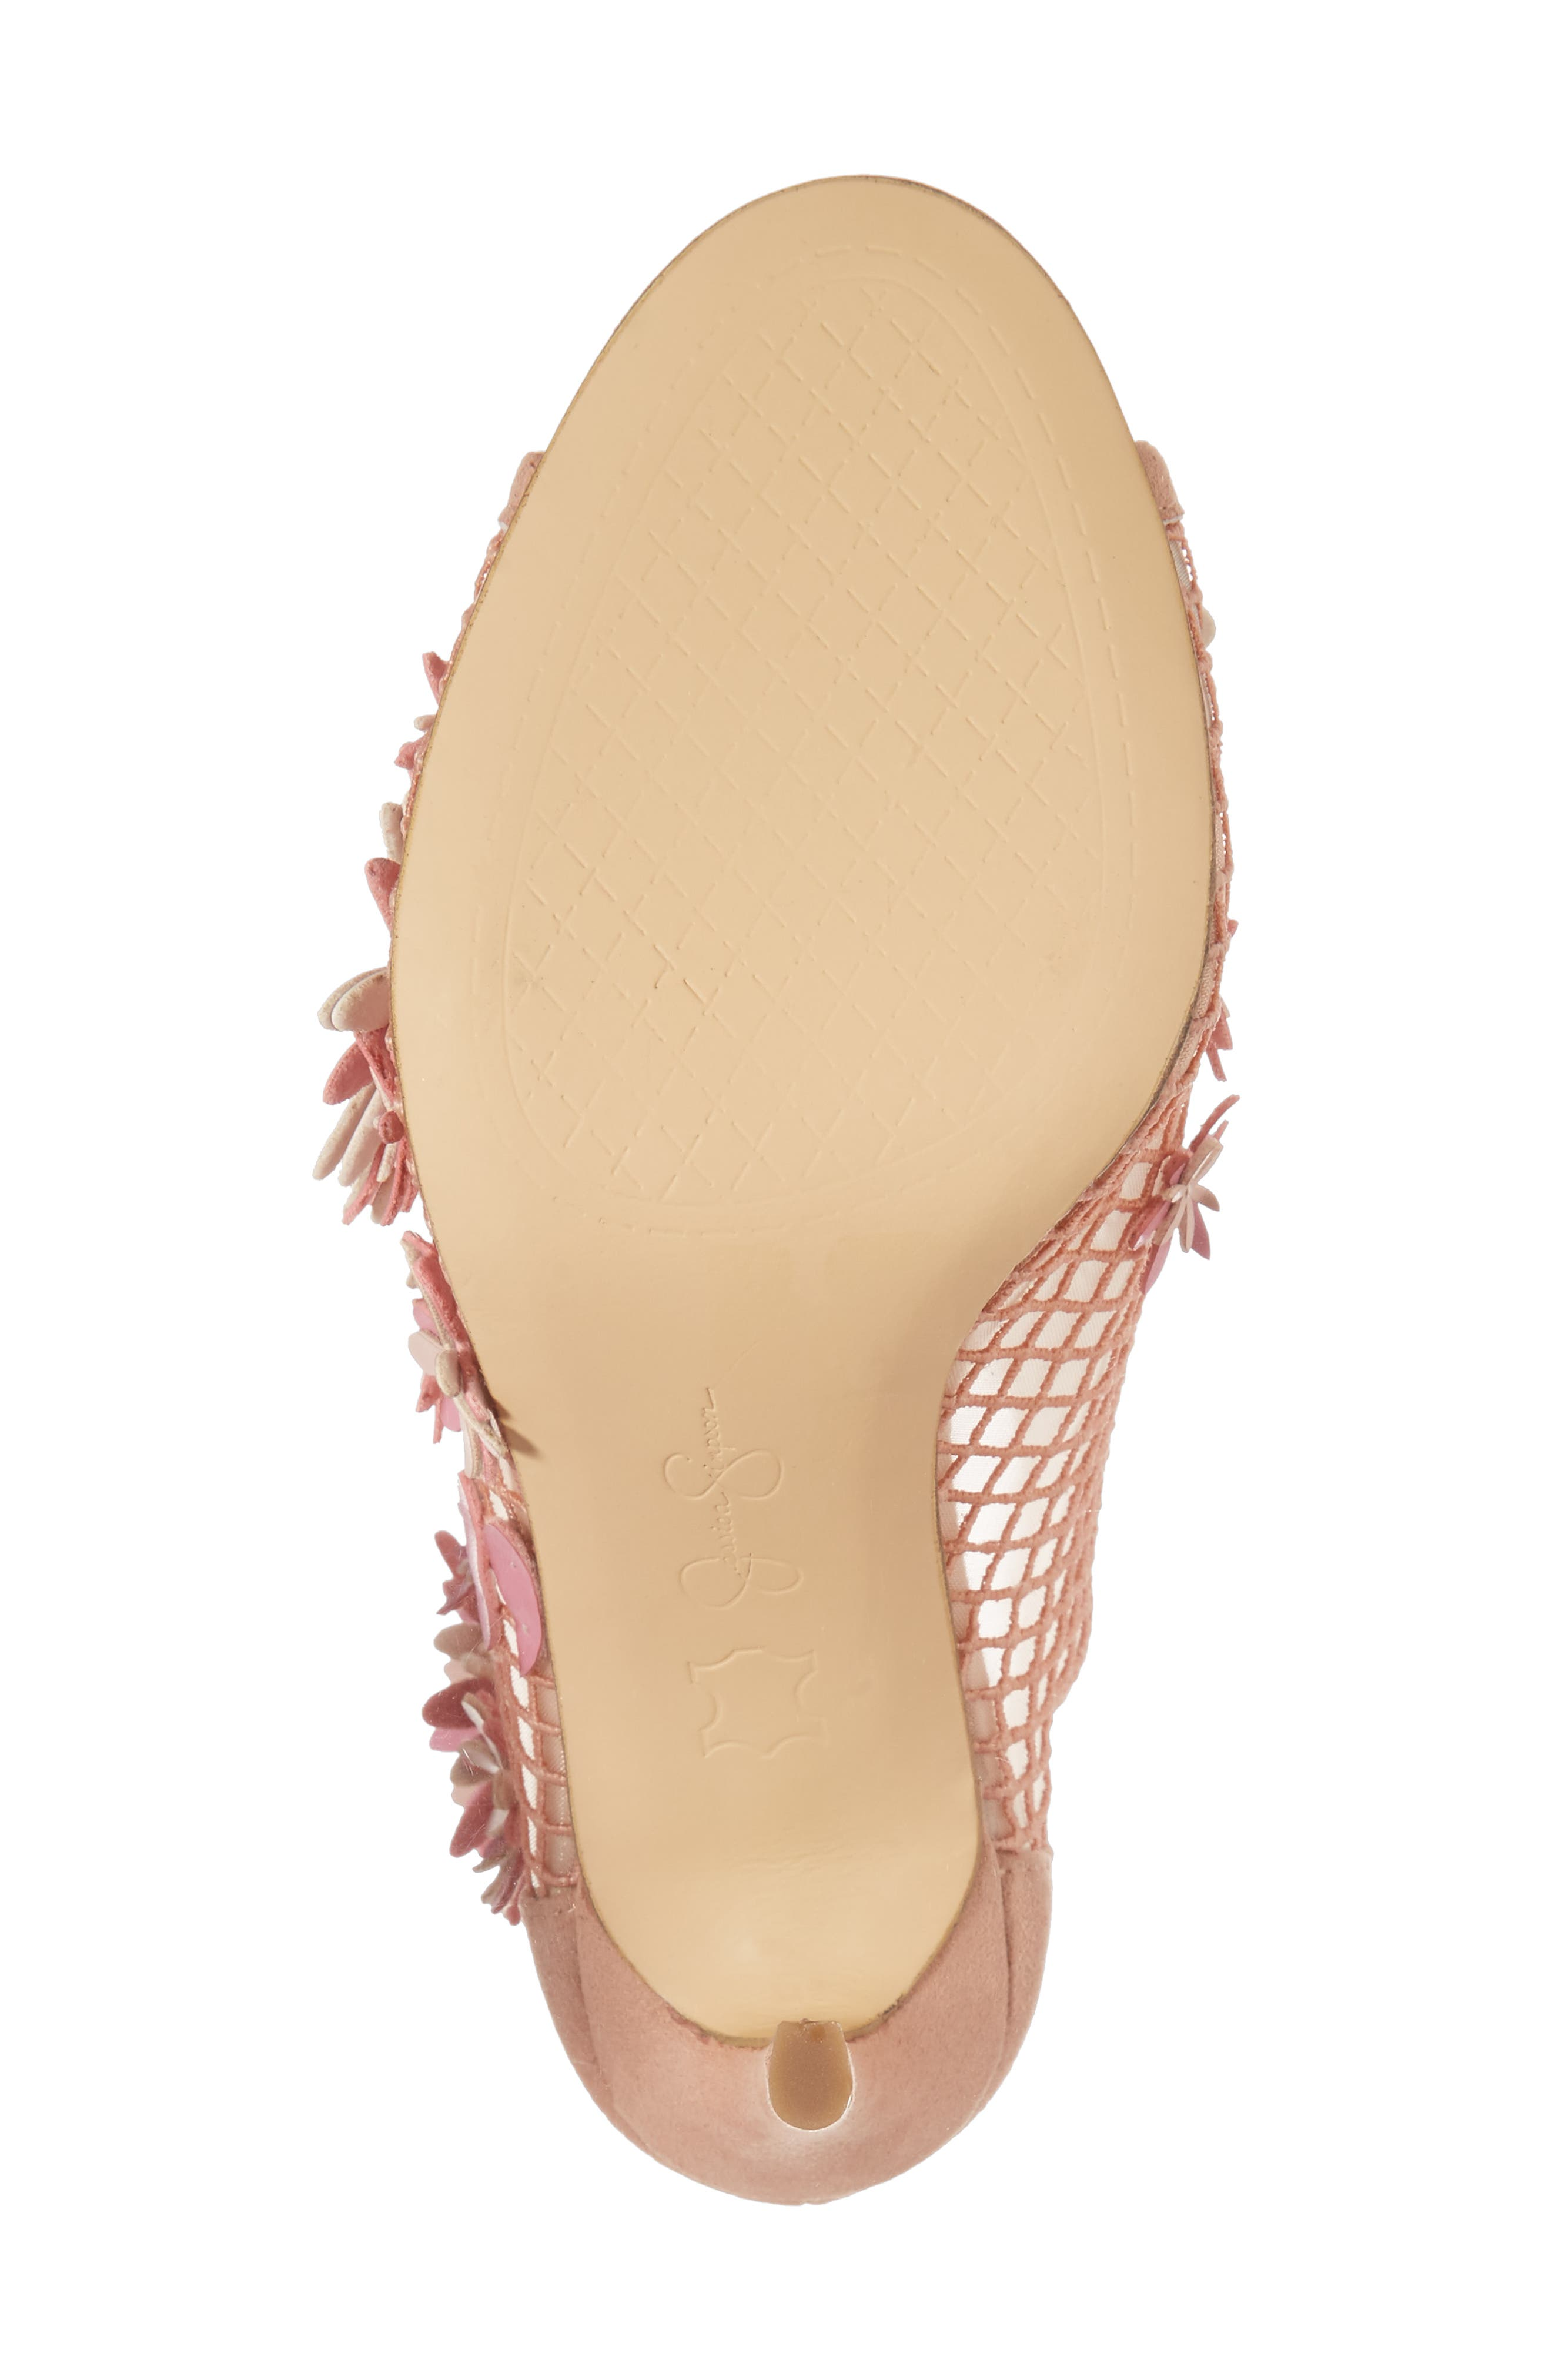 Jayko Flower Mesh Bootie,                             Alternate thumbnail 6, color,                             Nude Blush